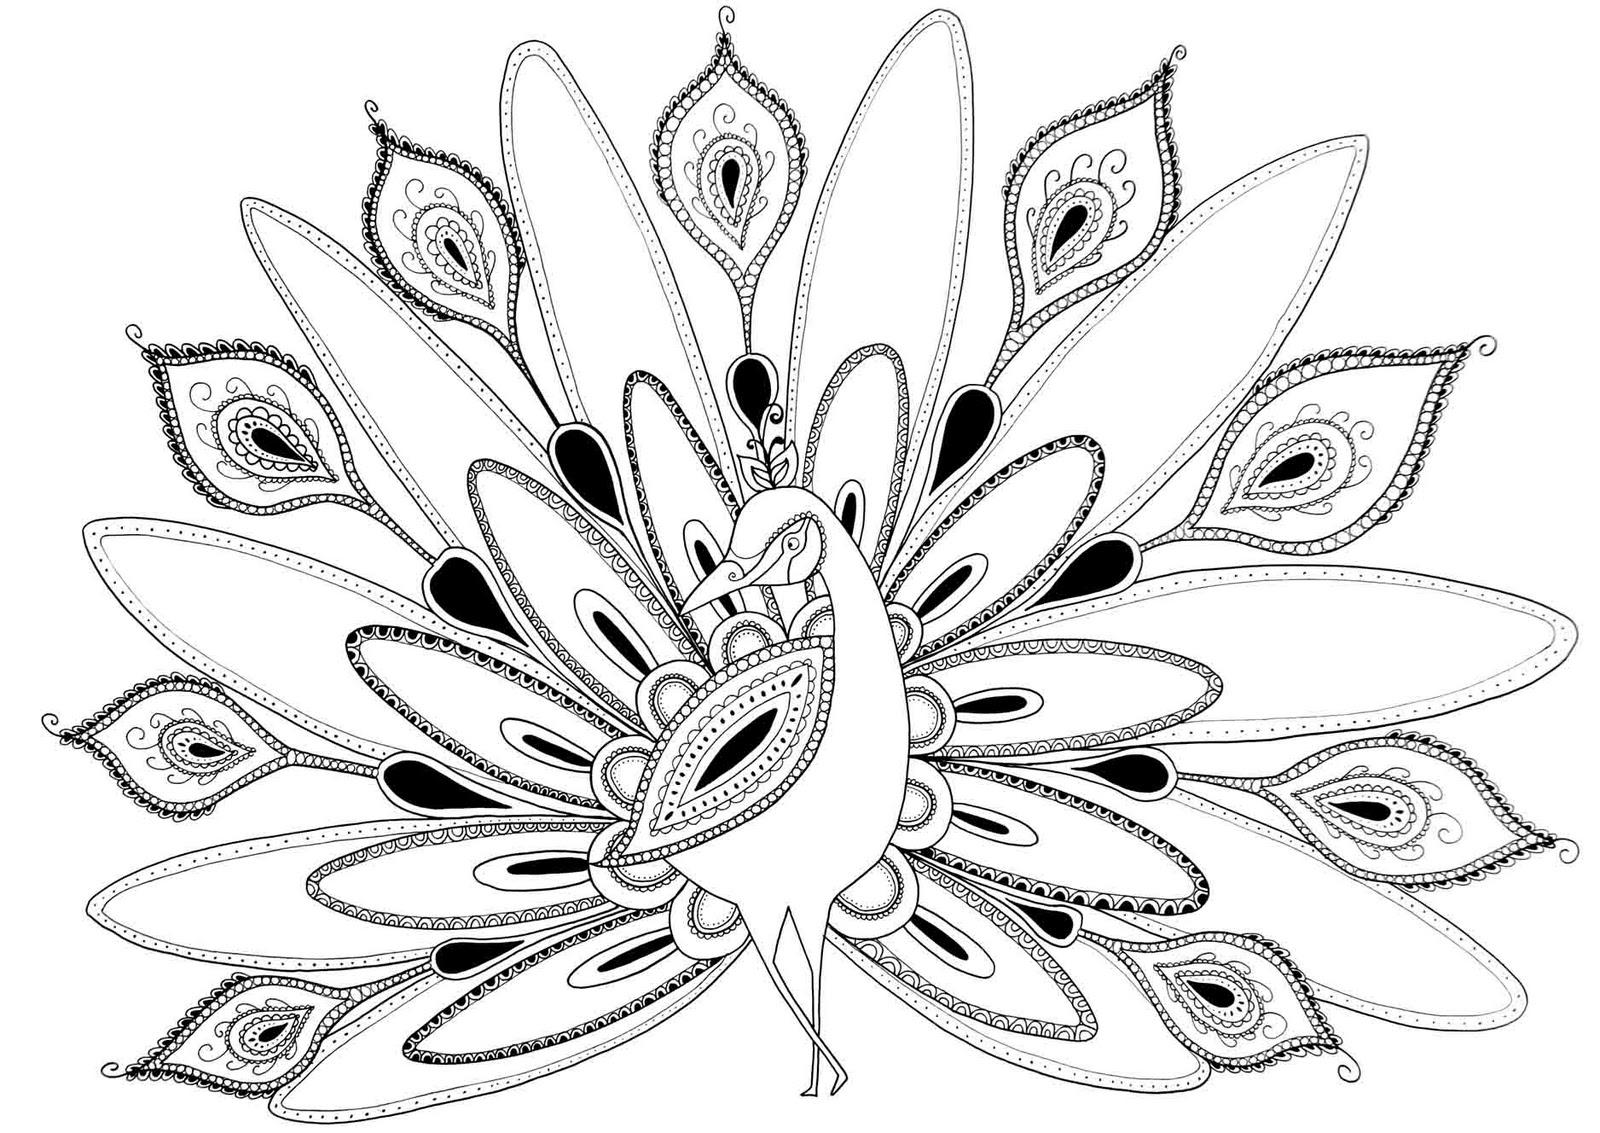 coloring pages of peacock free peacock adult coloring page craftfoxes coloring peacock of pages